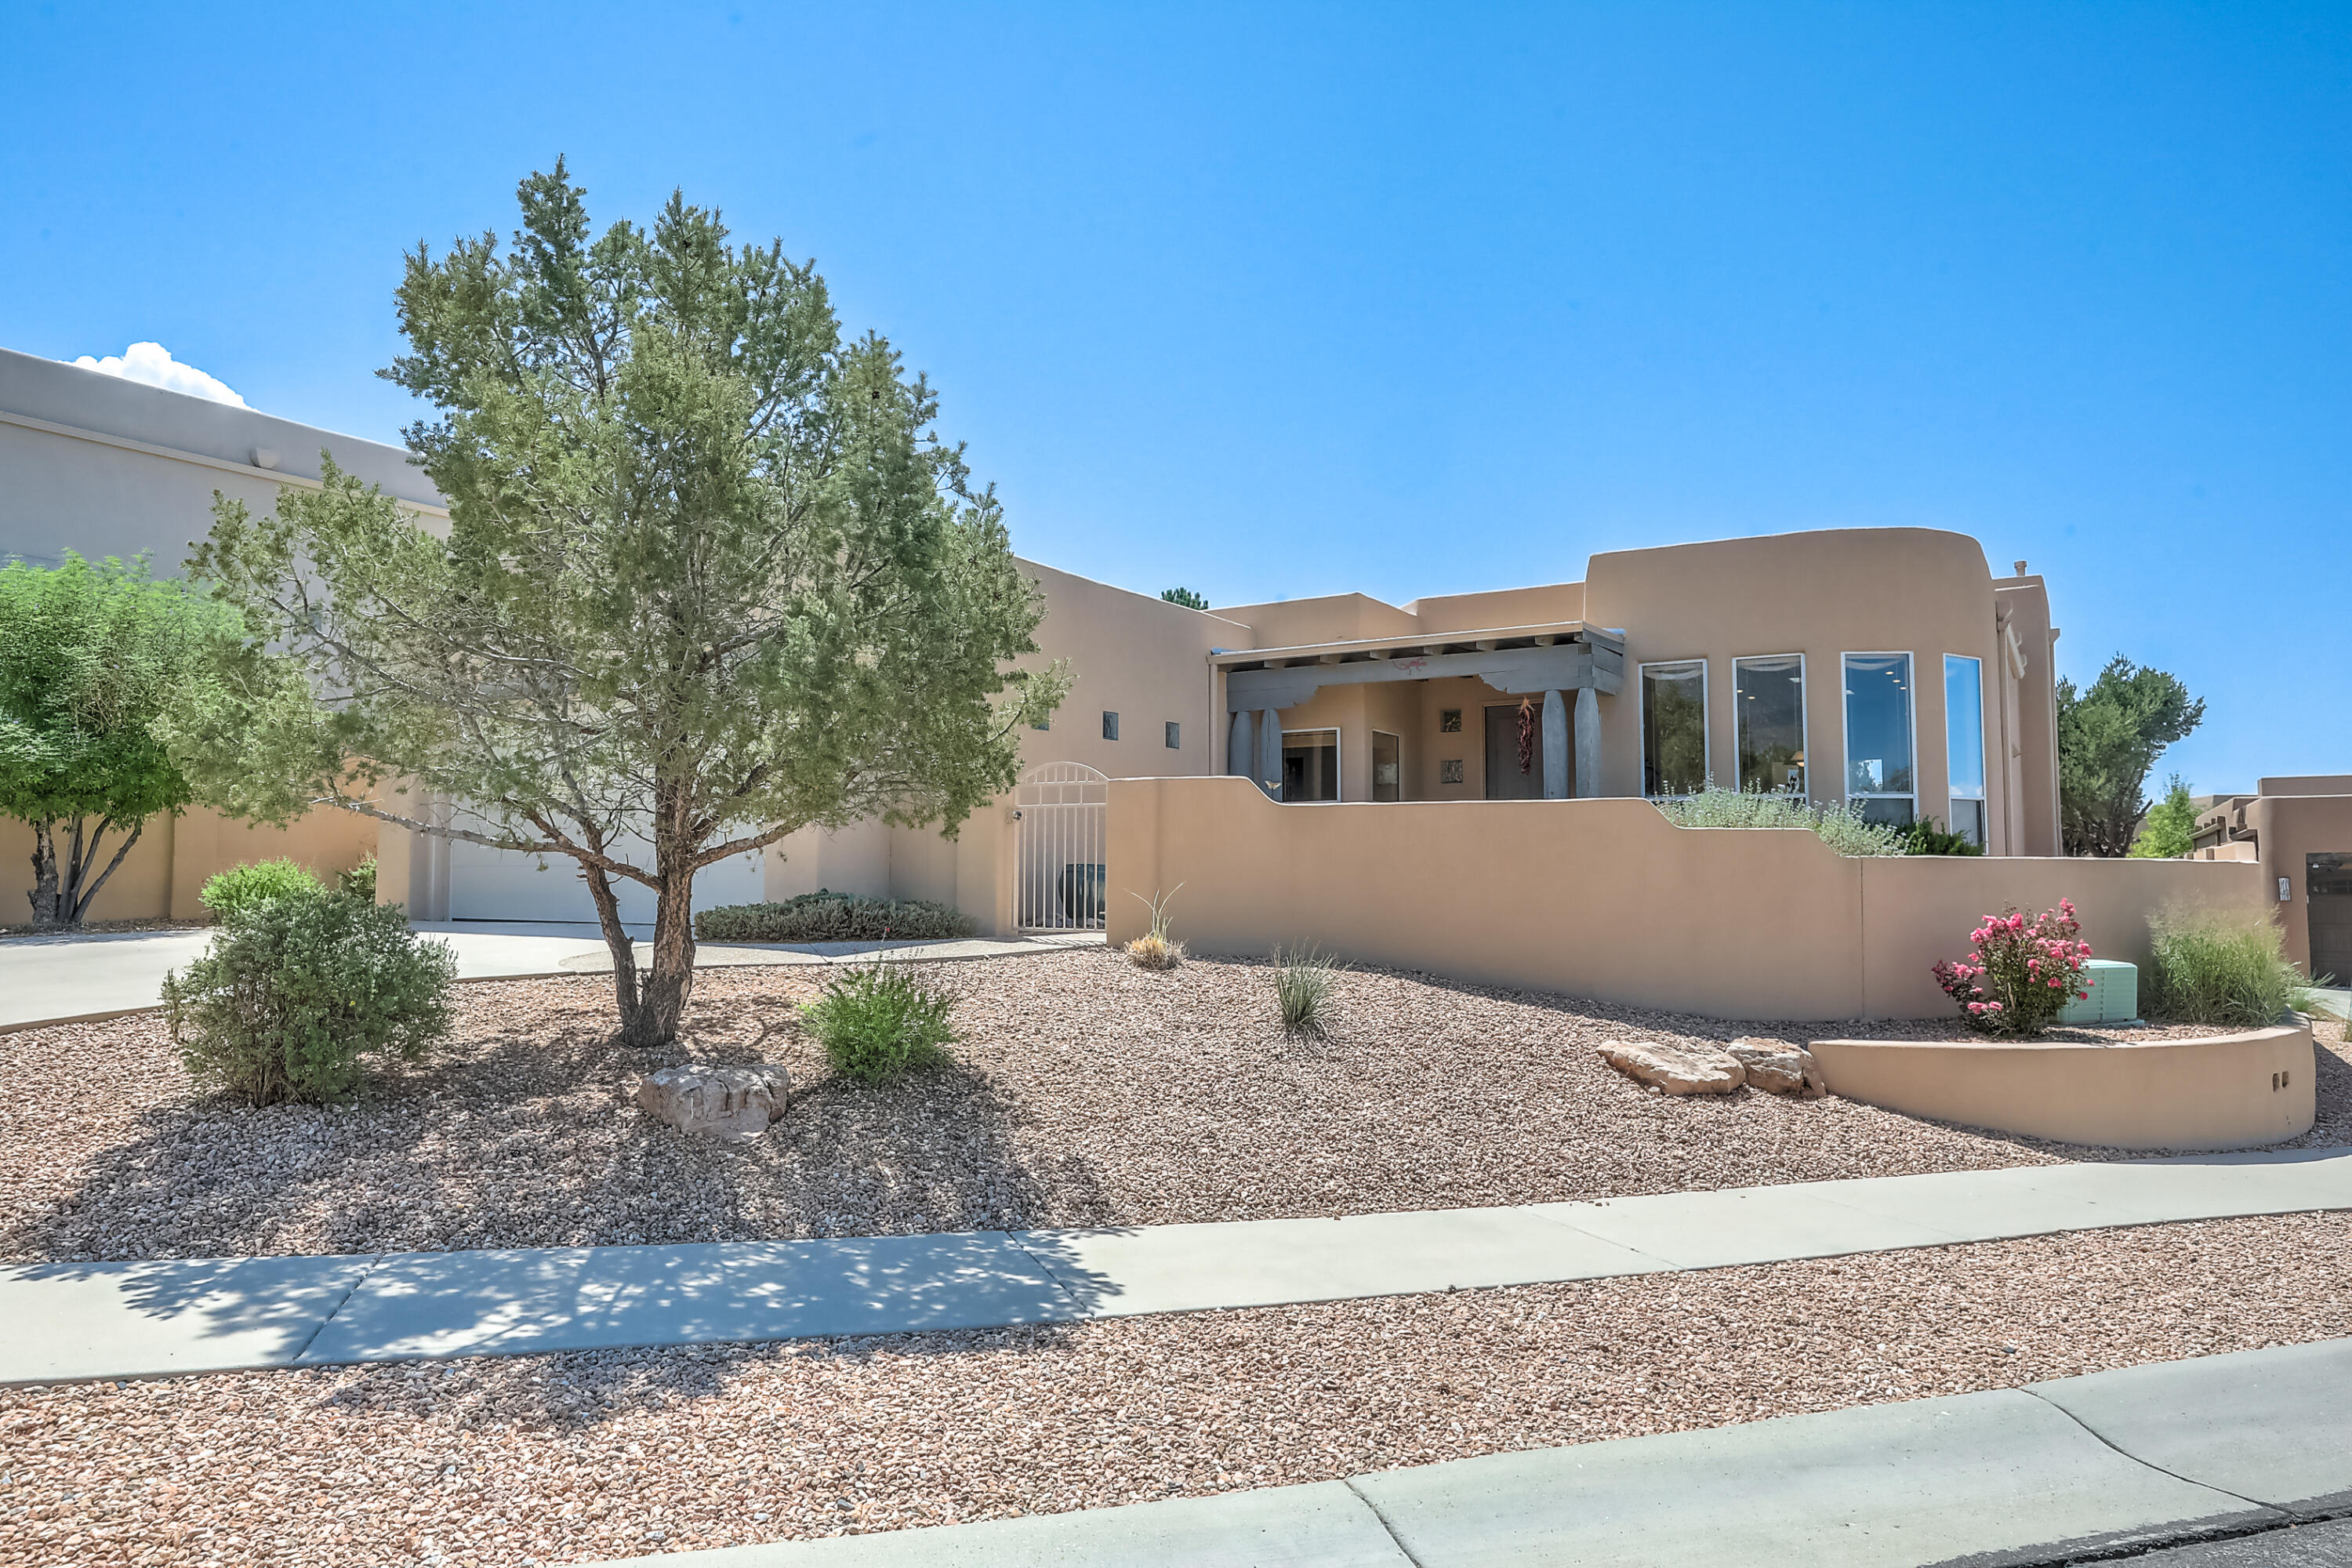 This beautiful Scott Patrick home in High Desert is absolutely spectacular and needs to be seen! Natural light floods the interior through glass skylights that were installed in 2020 along with a new roof. This single story custom home is situated on 0.25 acres and has plenty of space for everyone with 2900 sq ft of living area. Mountain views from the breakfast nook & a great entertaining space flows between the kitchen and living room for those large gatherings. The owner's suite has a separate tub and shower and big walk-in closet. Ample additional bedrooms and bathrooms for everyone; Jack & Jill bath for beds 2 & 3 or a guest room with 3/4 bath access. The tandem garage parking means you can fit 3 vehicles to optimize your use of space. So much more to see, schedule a showing today!